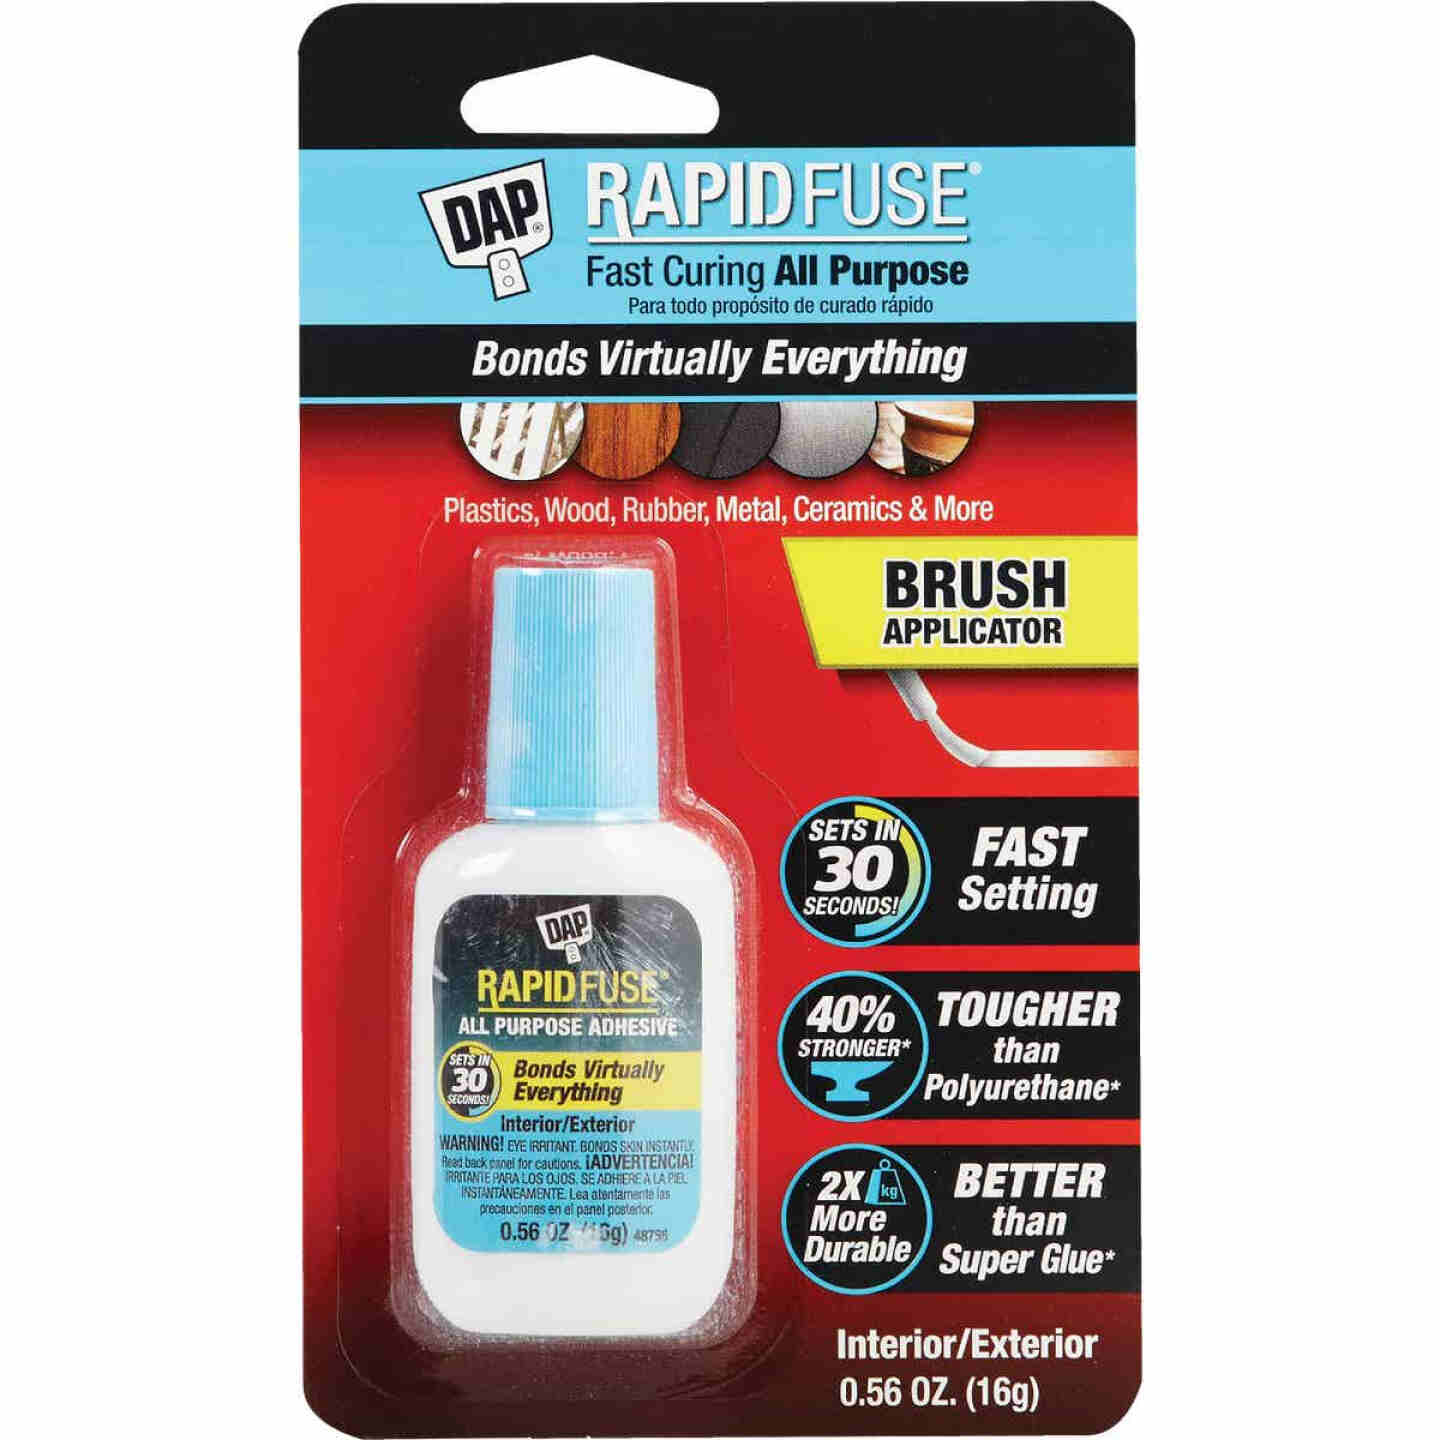 DAP RapidFuse 0.56 Oz. Clear Multi-Purpose Adhesive Brush Applicator Image 1